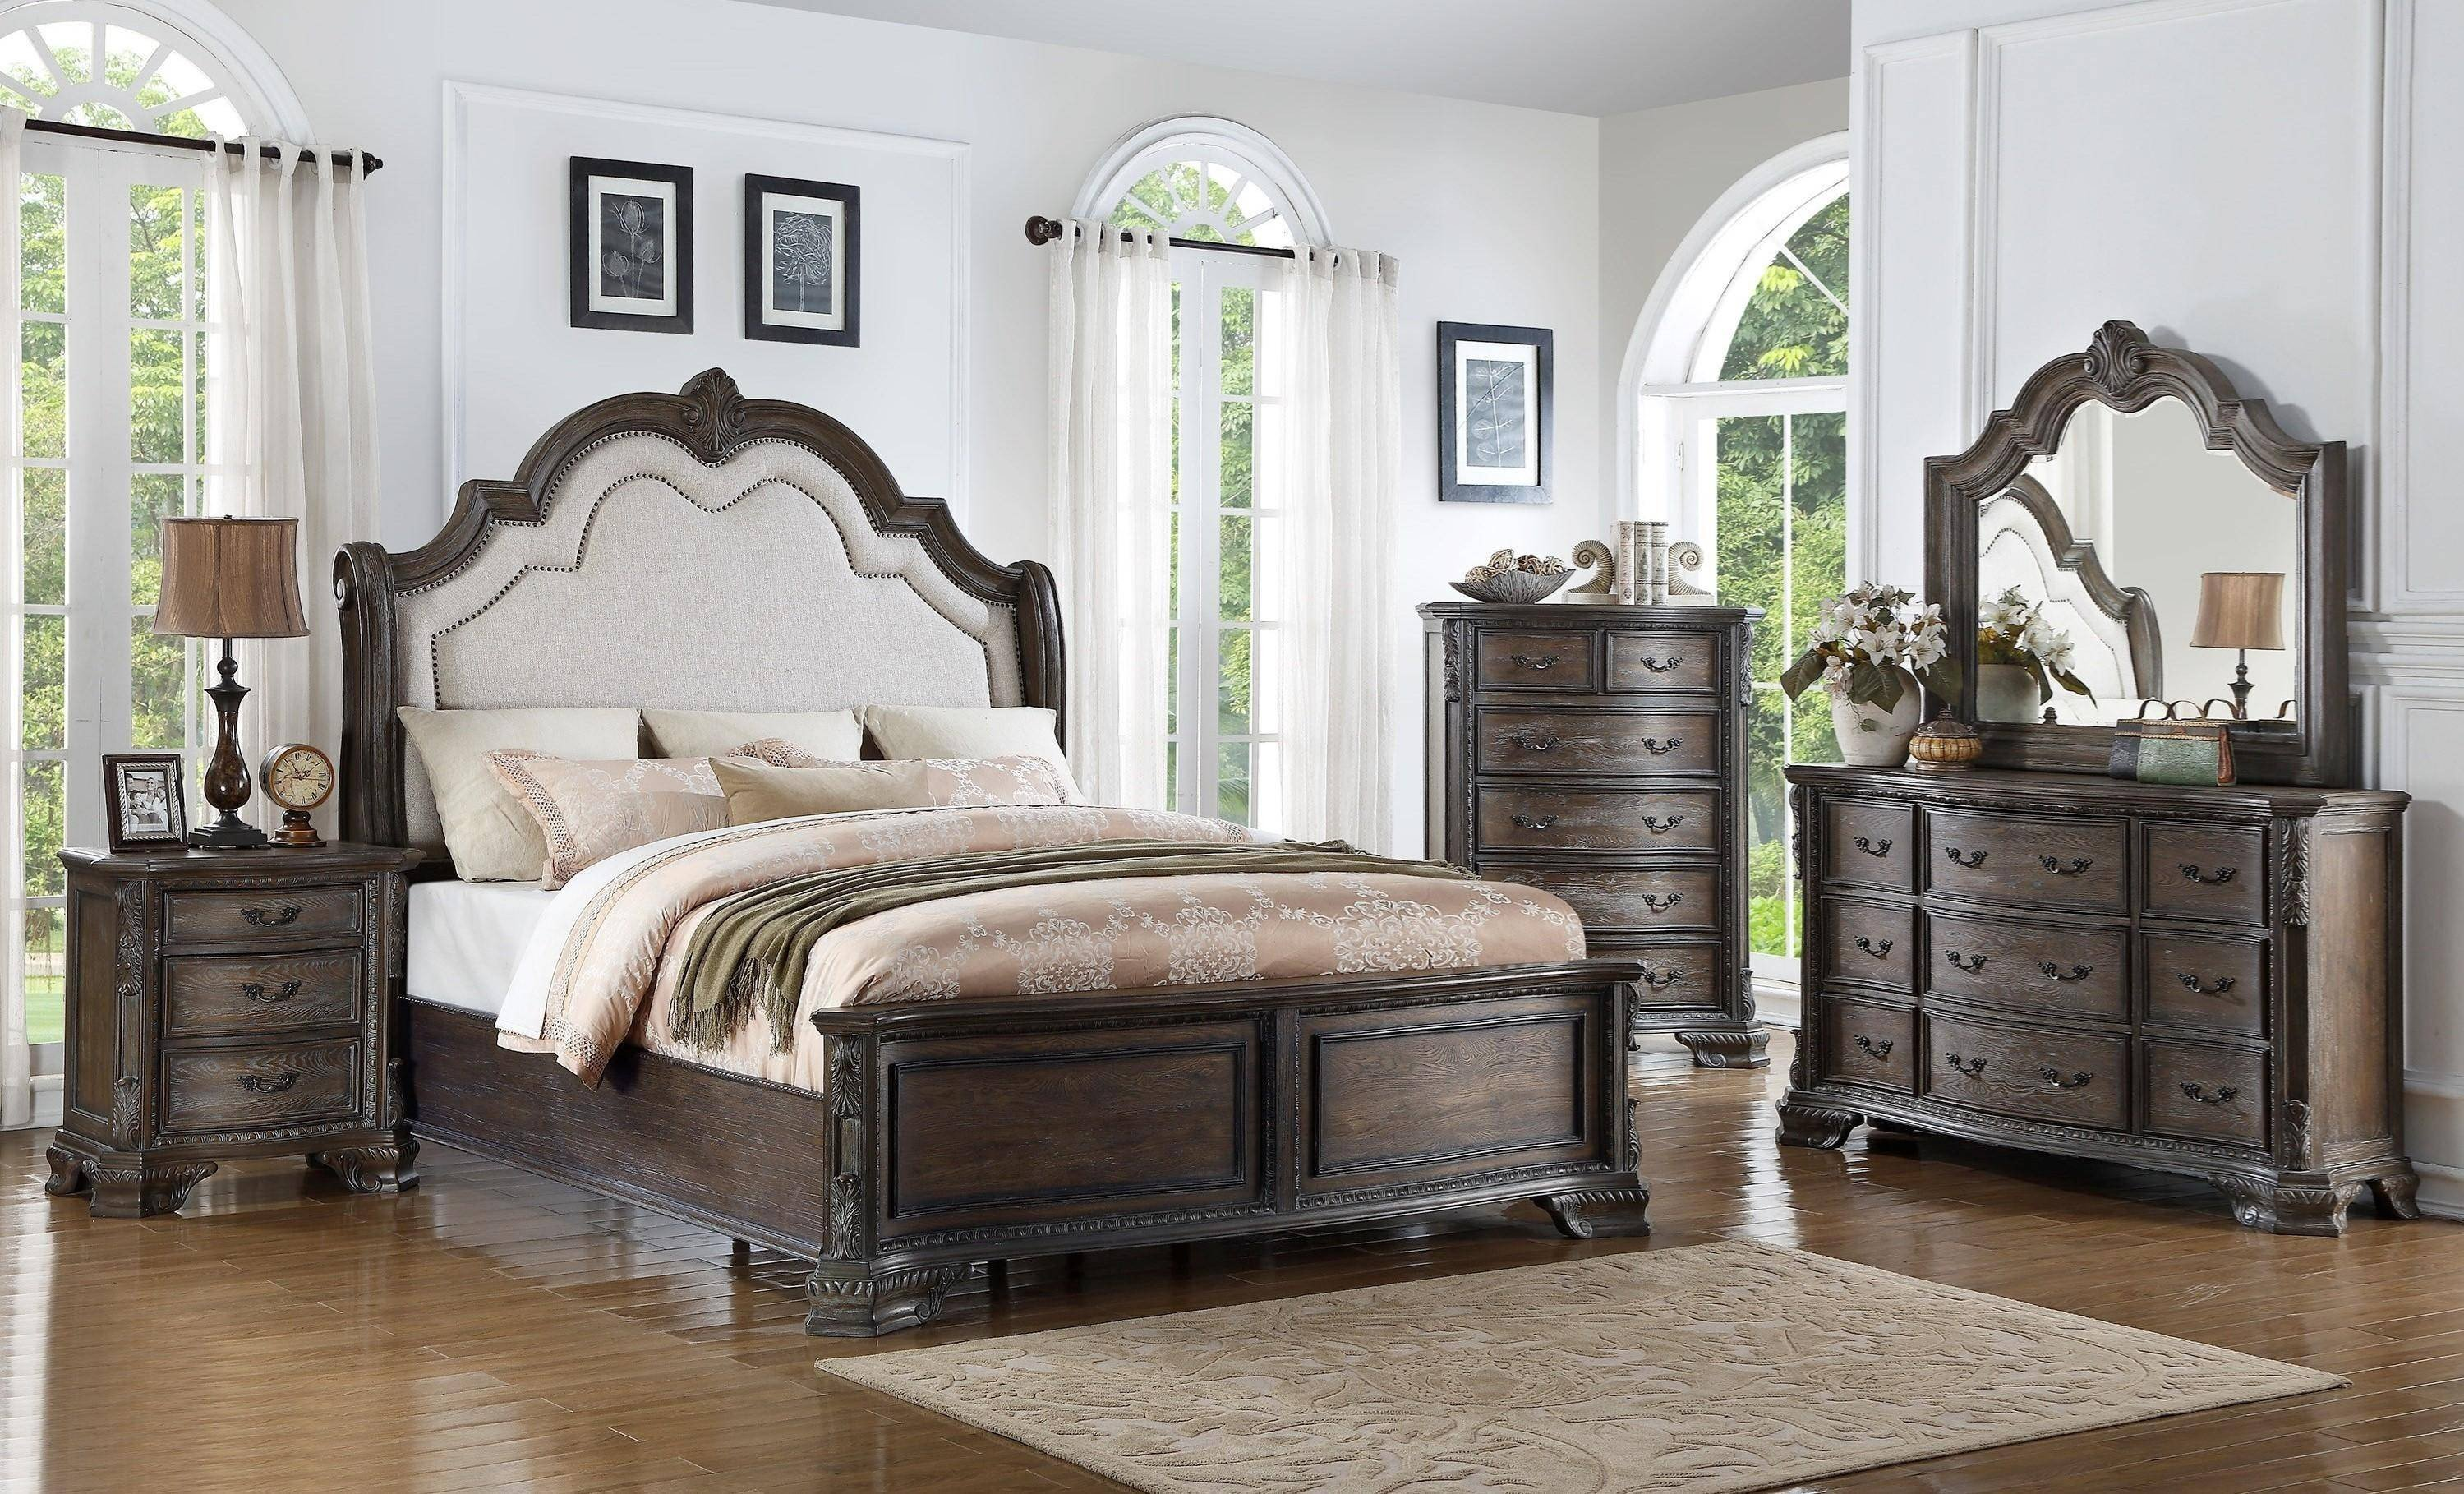 Mirrored Bedroom Furniture Set Fresh Crown Mark B1120 Sheffield Queen Panel Bed In Gray Fabric